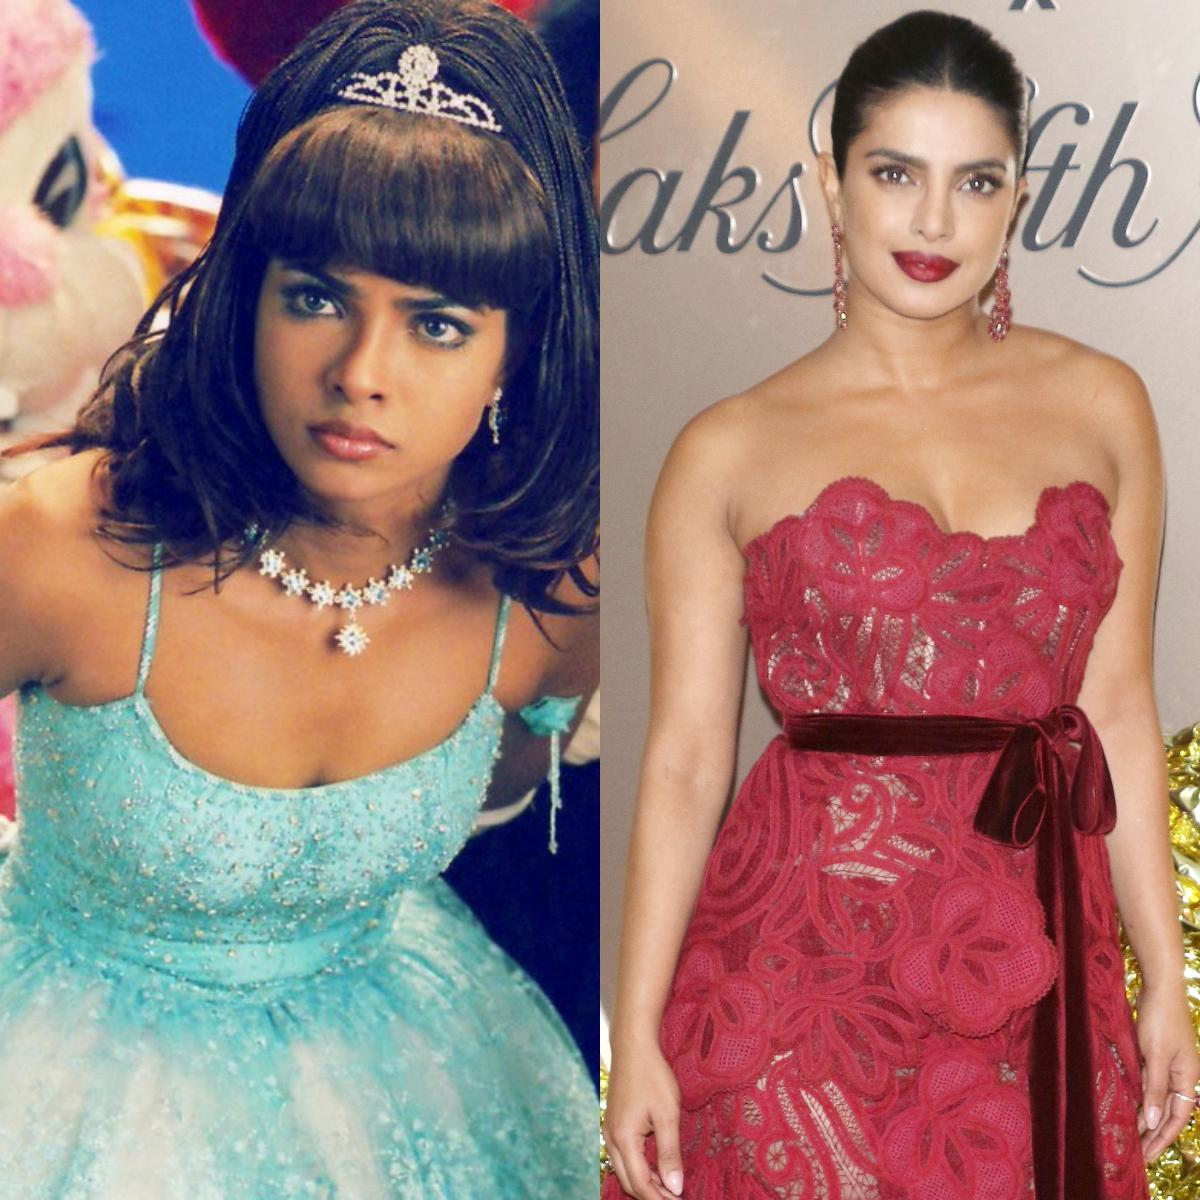 Priyanka Chopra From Miss World At 18 To B Town Journey Being A